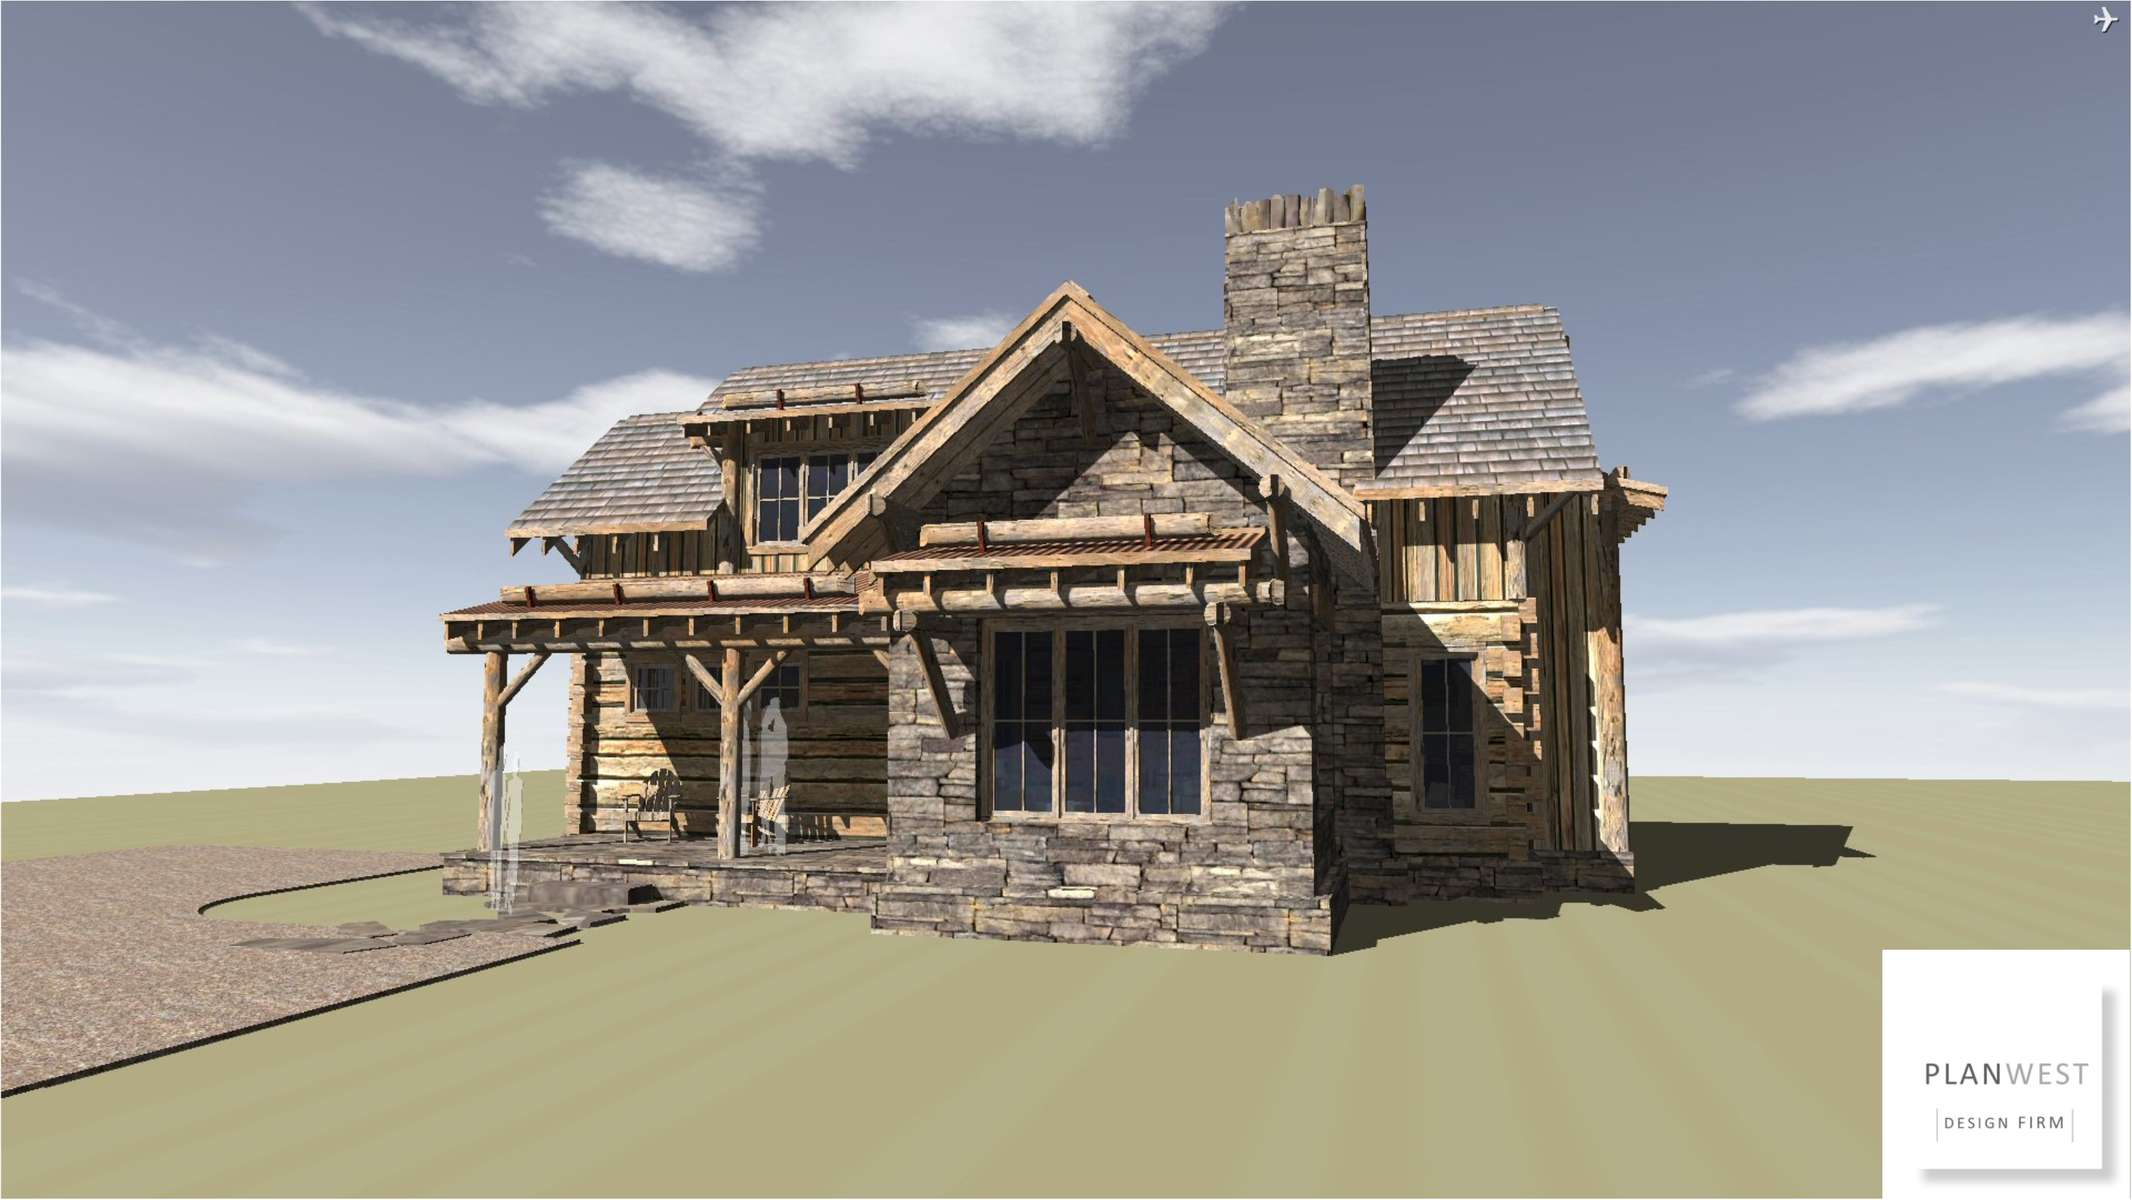 Plan-West-Design-Firm_Projects-in-process-1527